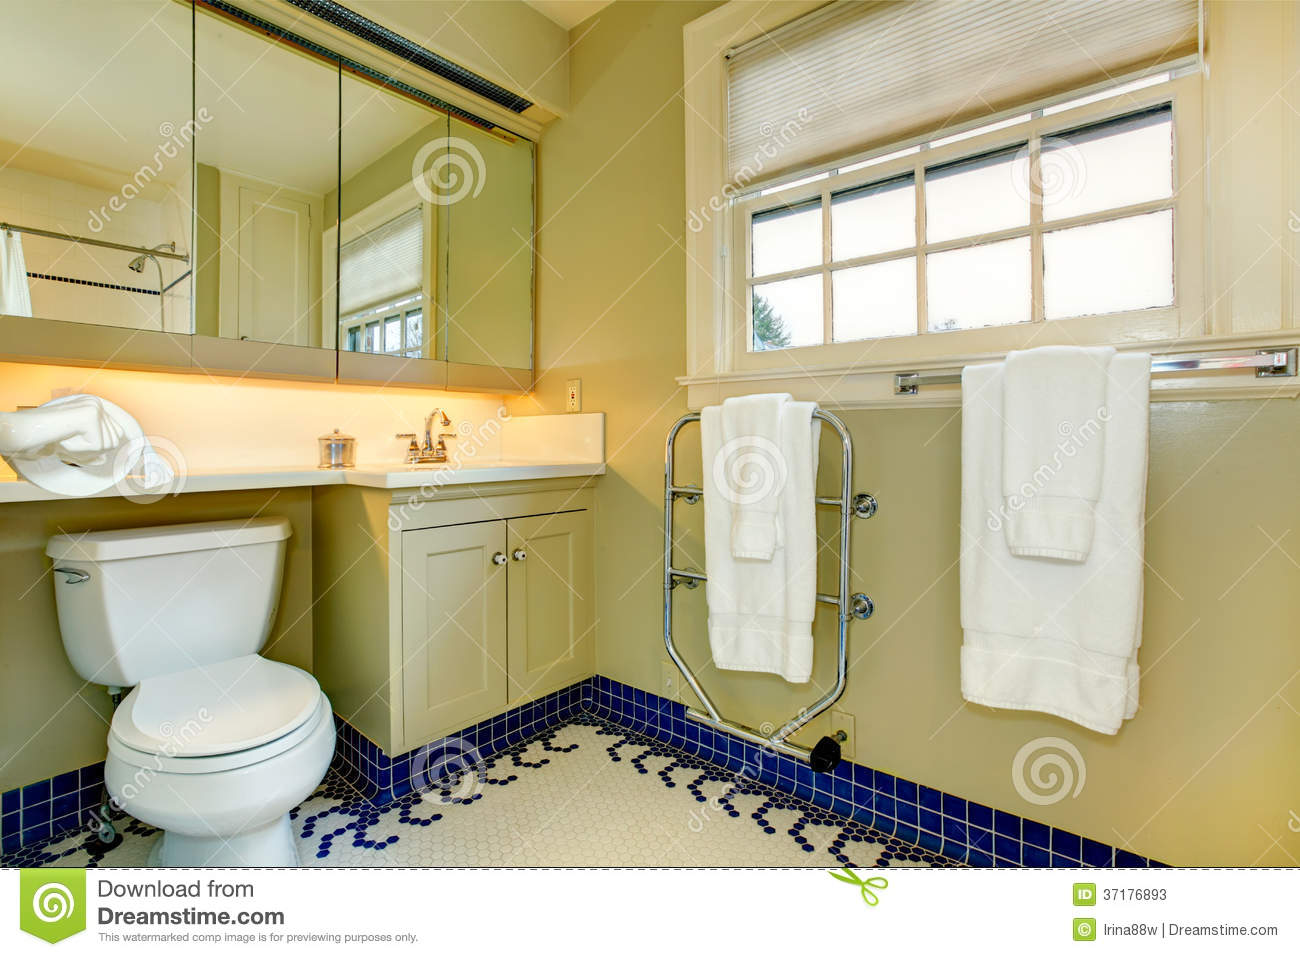 Bright Yellow Bathroom With Blue Tile Floor